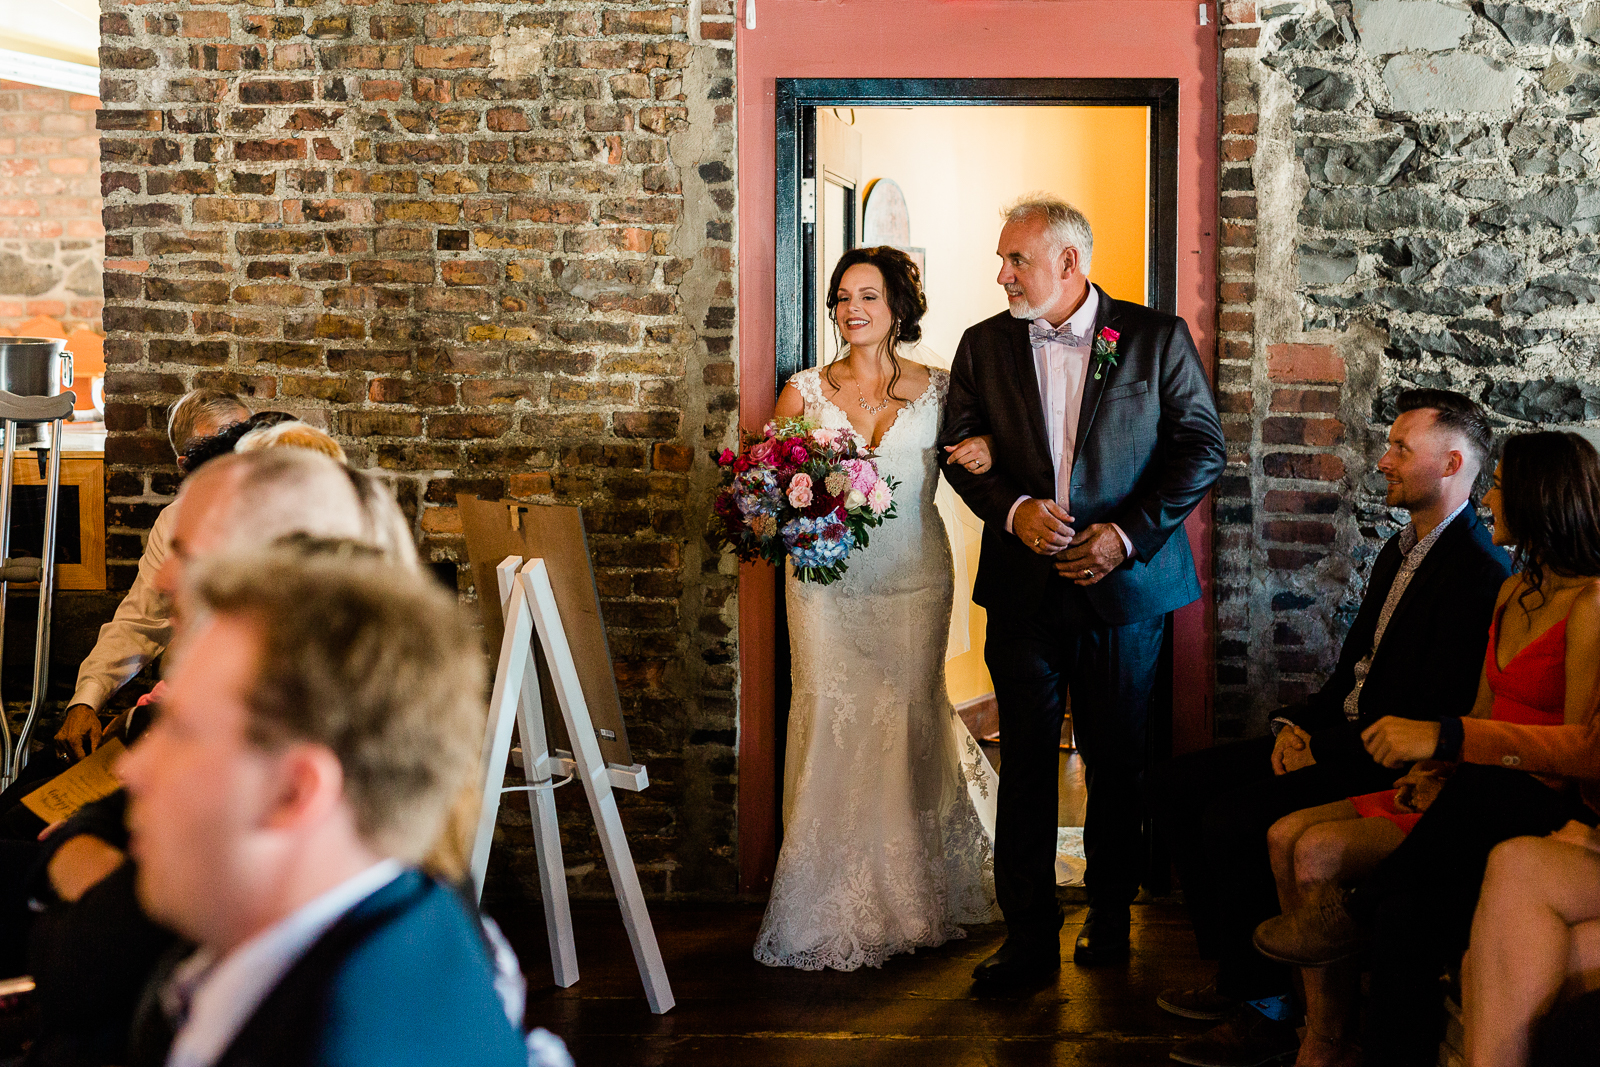 0033st-johns-wedding-photographer-caitlin-adam-yellowbelly.jpg